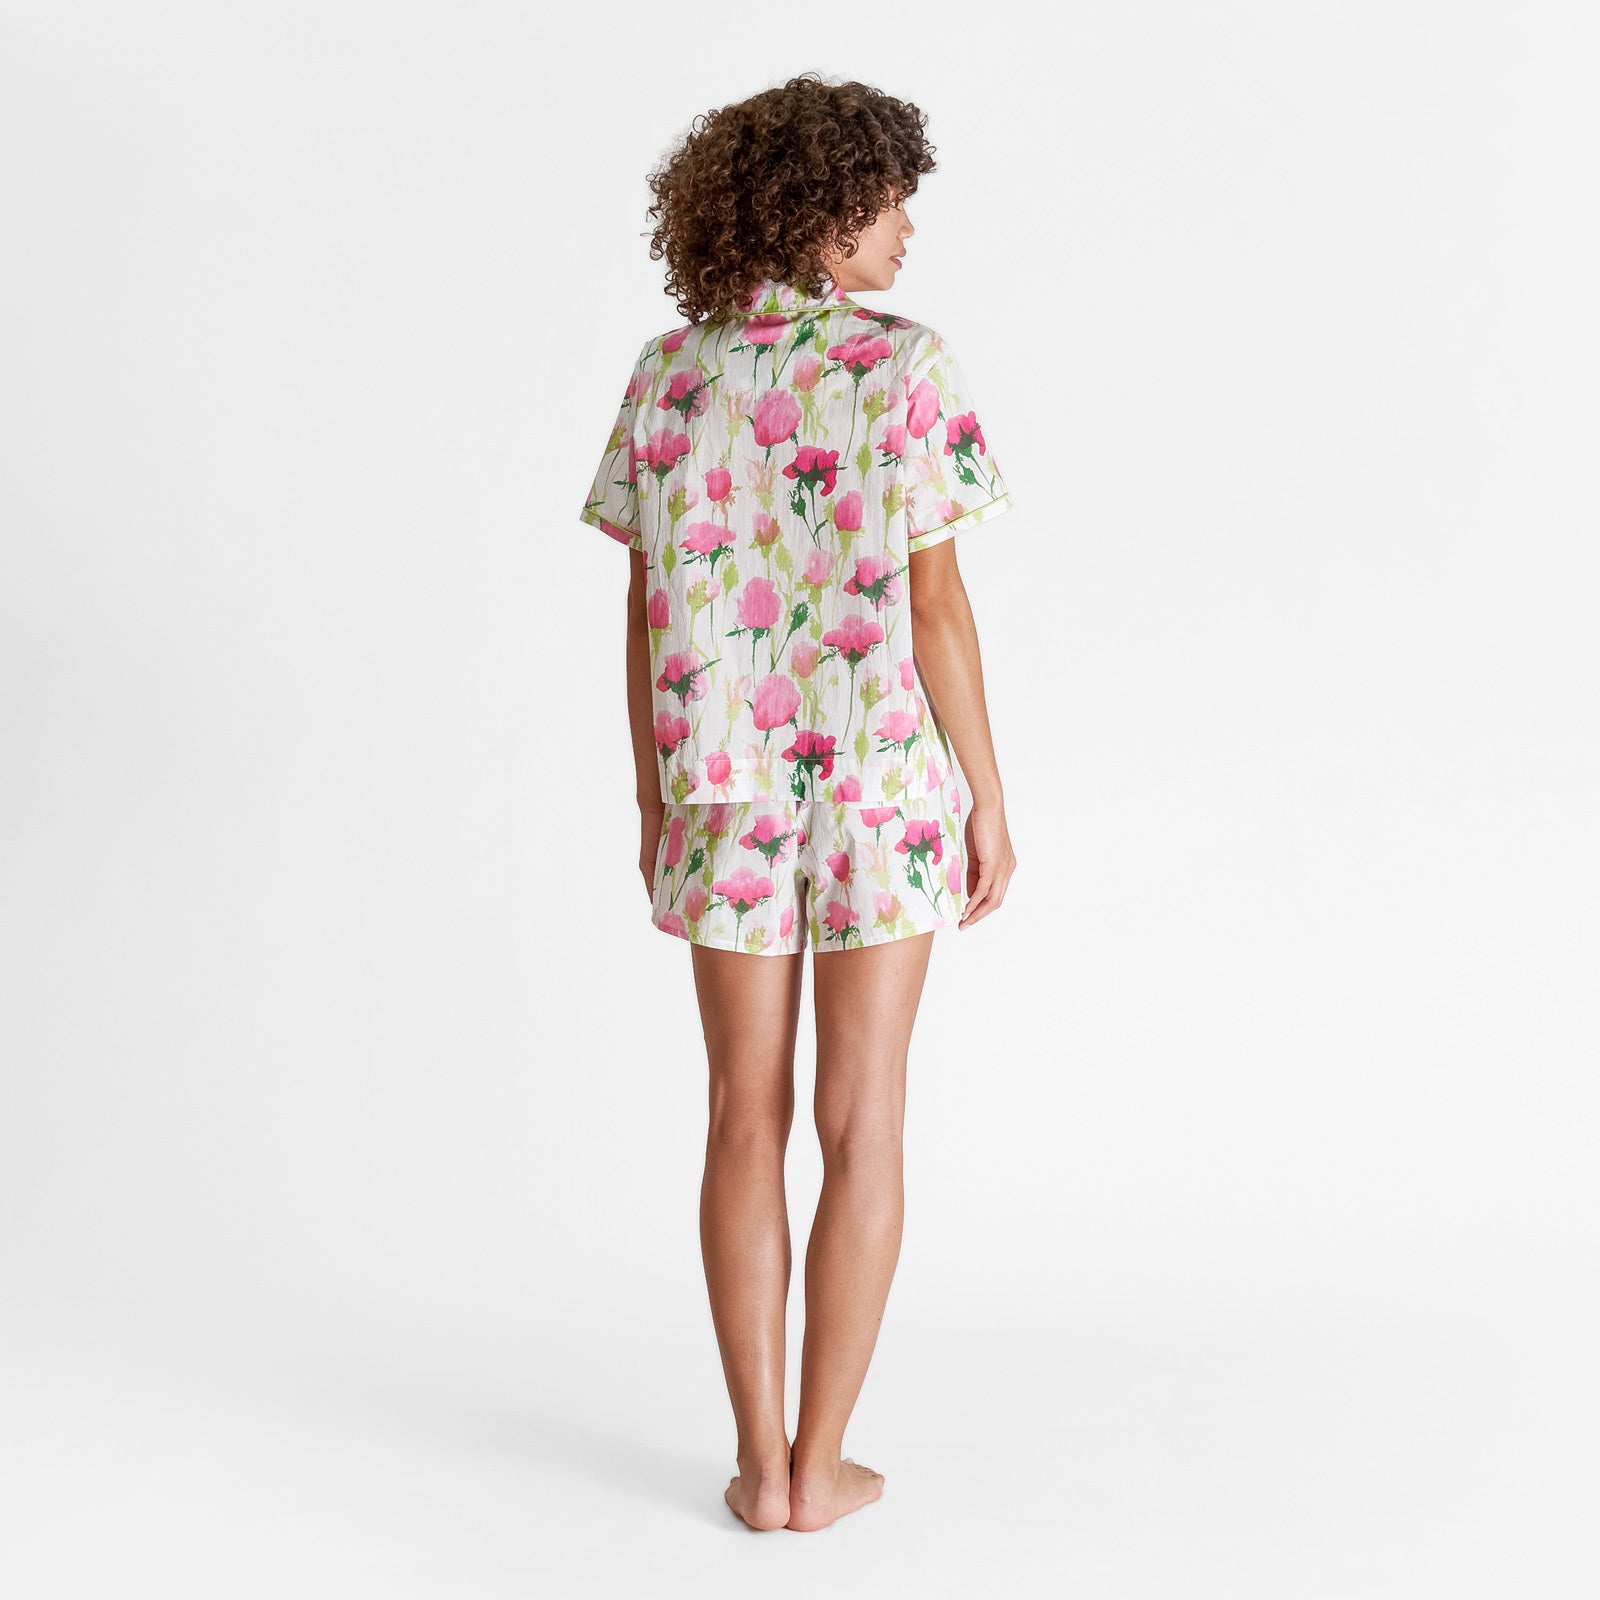 Sleepy Jones x Frances Valentine Corita Pajama Short Set